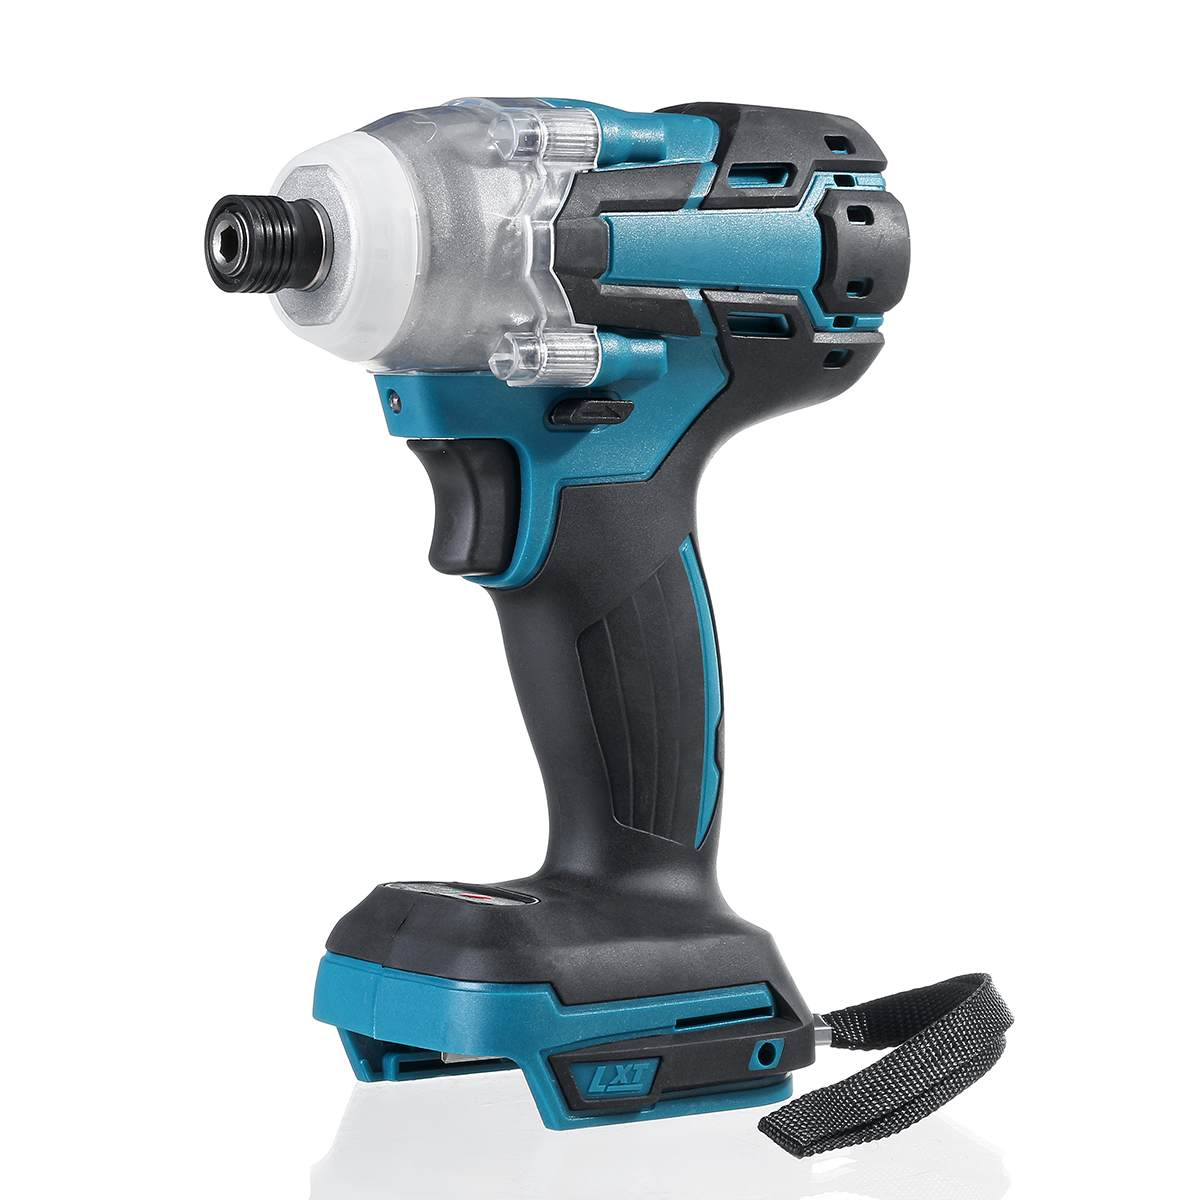 520N.m Cordless Brushless Impact Wrench 2700rpm Electric Screwdriver Stepless Speed Change Switch Adapted To 18V Makita Battery